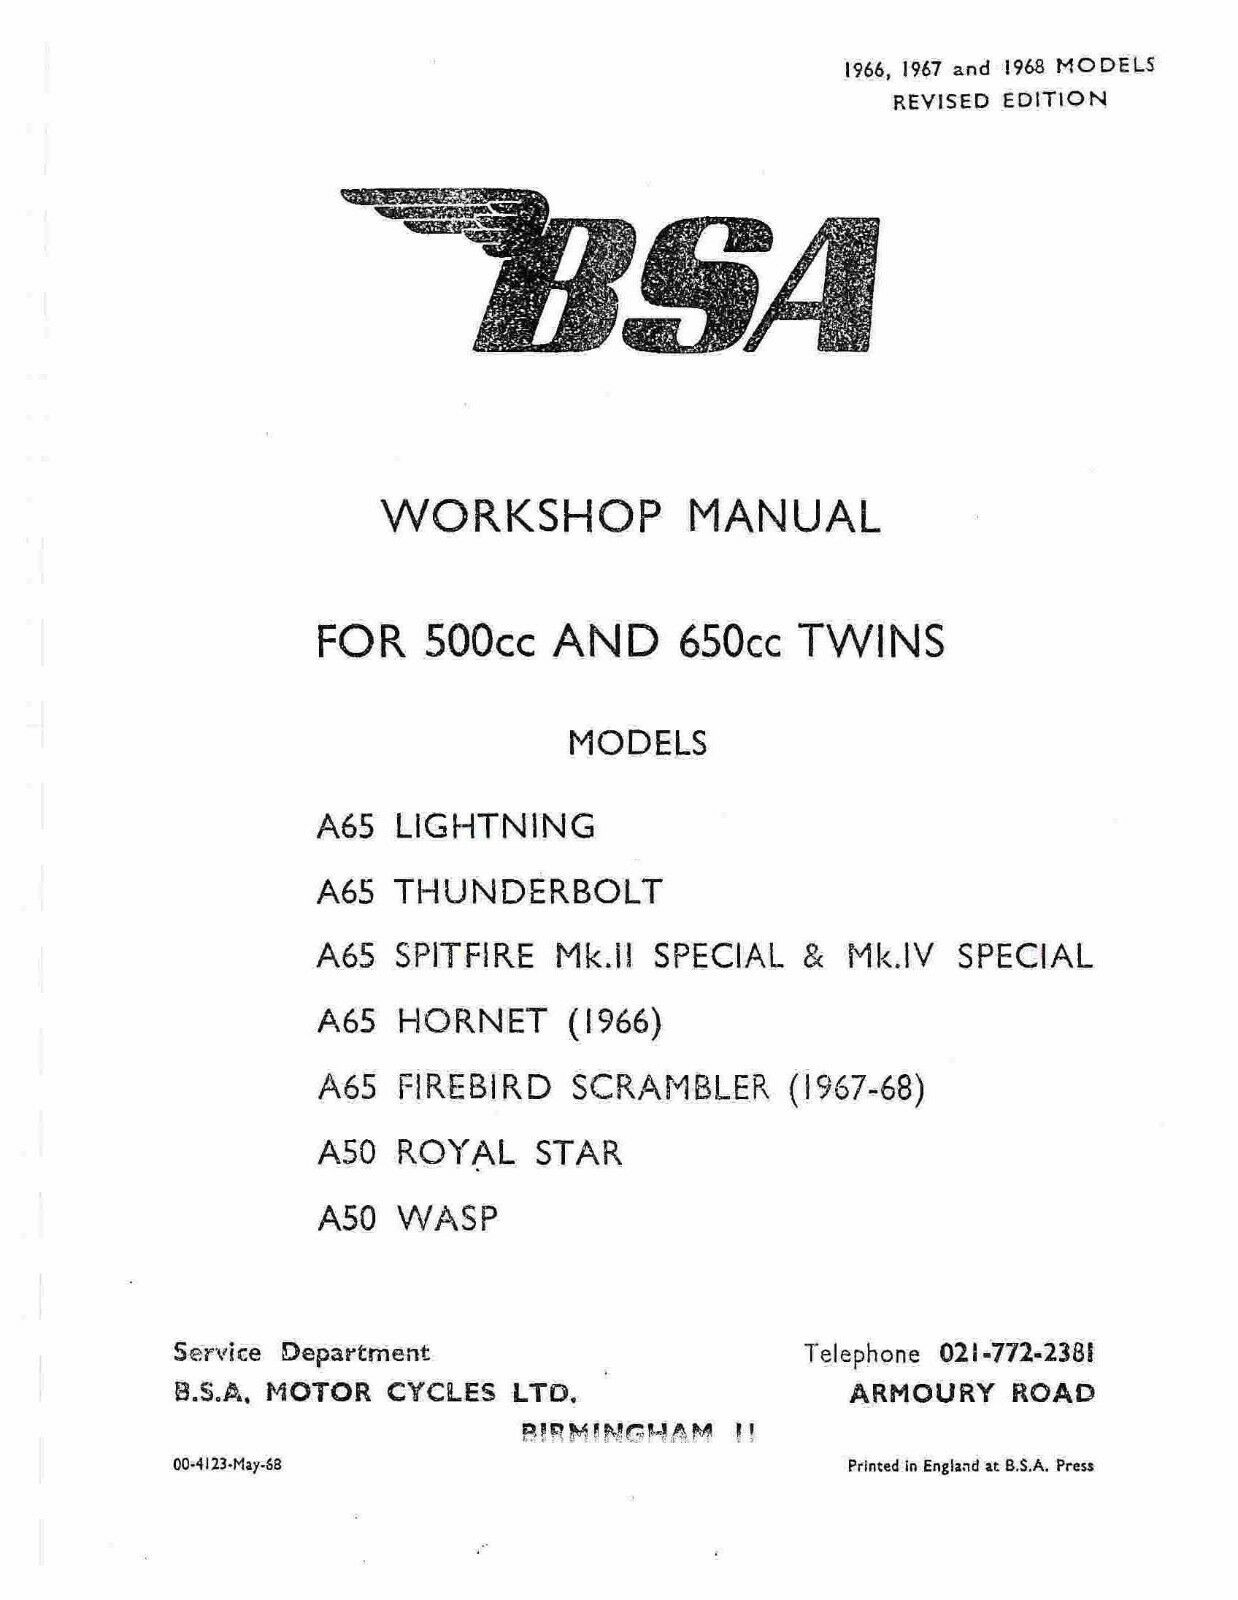 BSA workshop service manual 1966, 1967 & 1968 A50 WASP 1 of 12Only 1  available ...